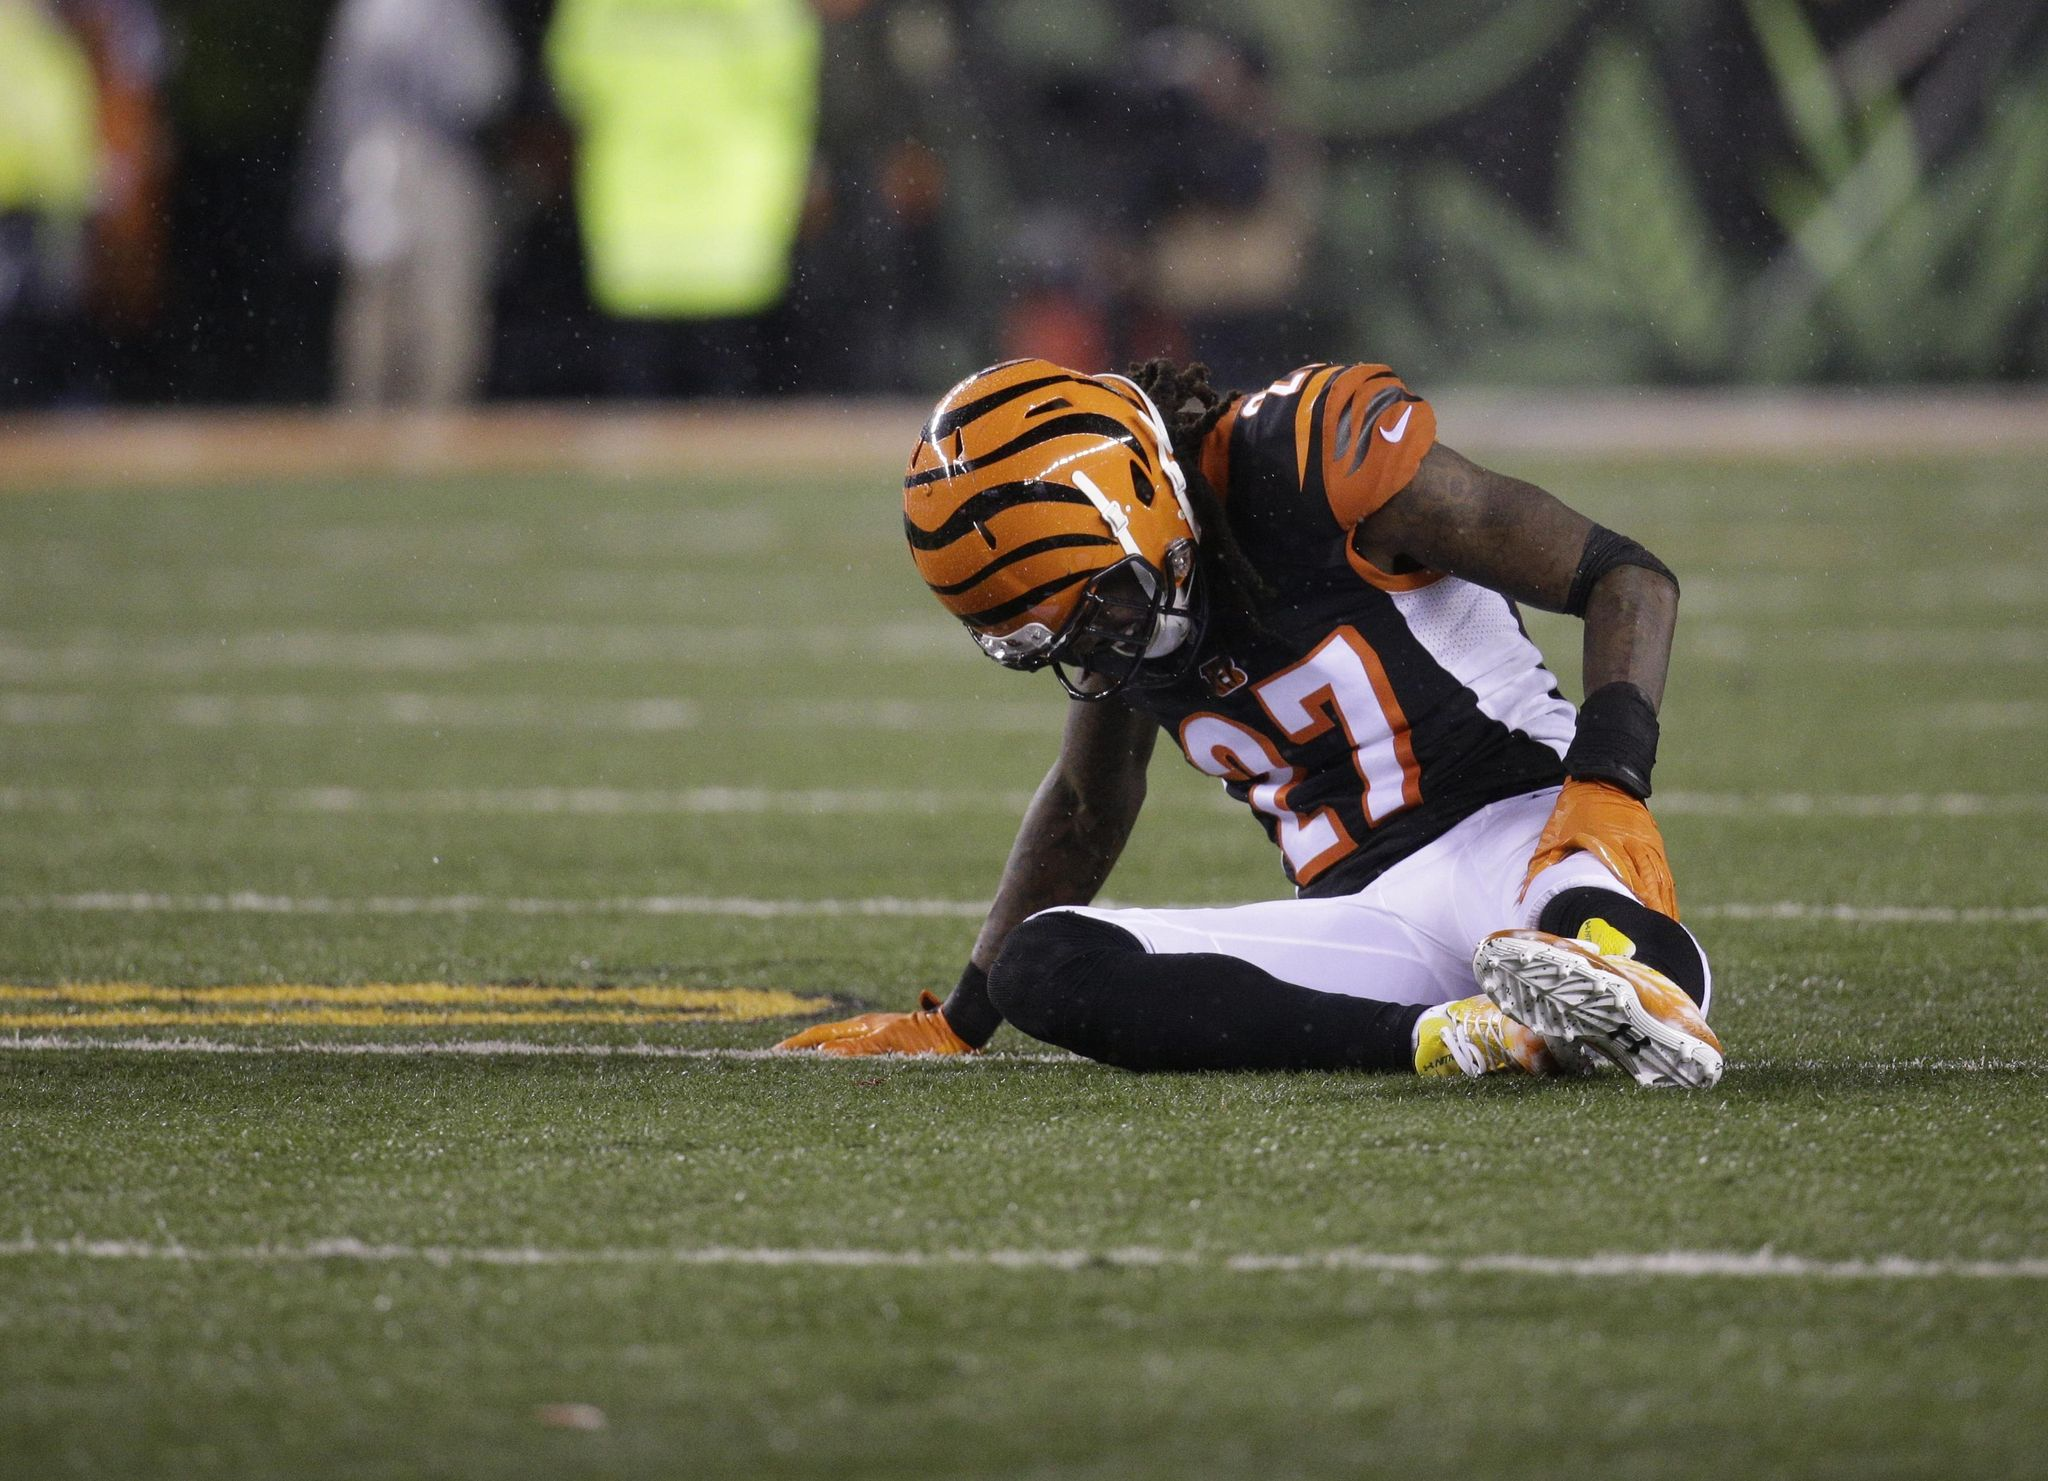 Bengals_rivalry_revisited_football_13009_s2048x1481